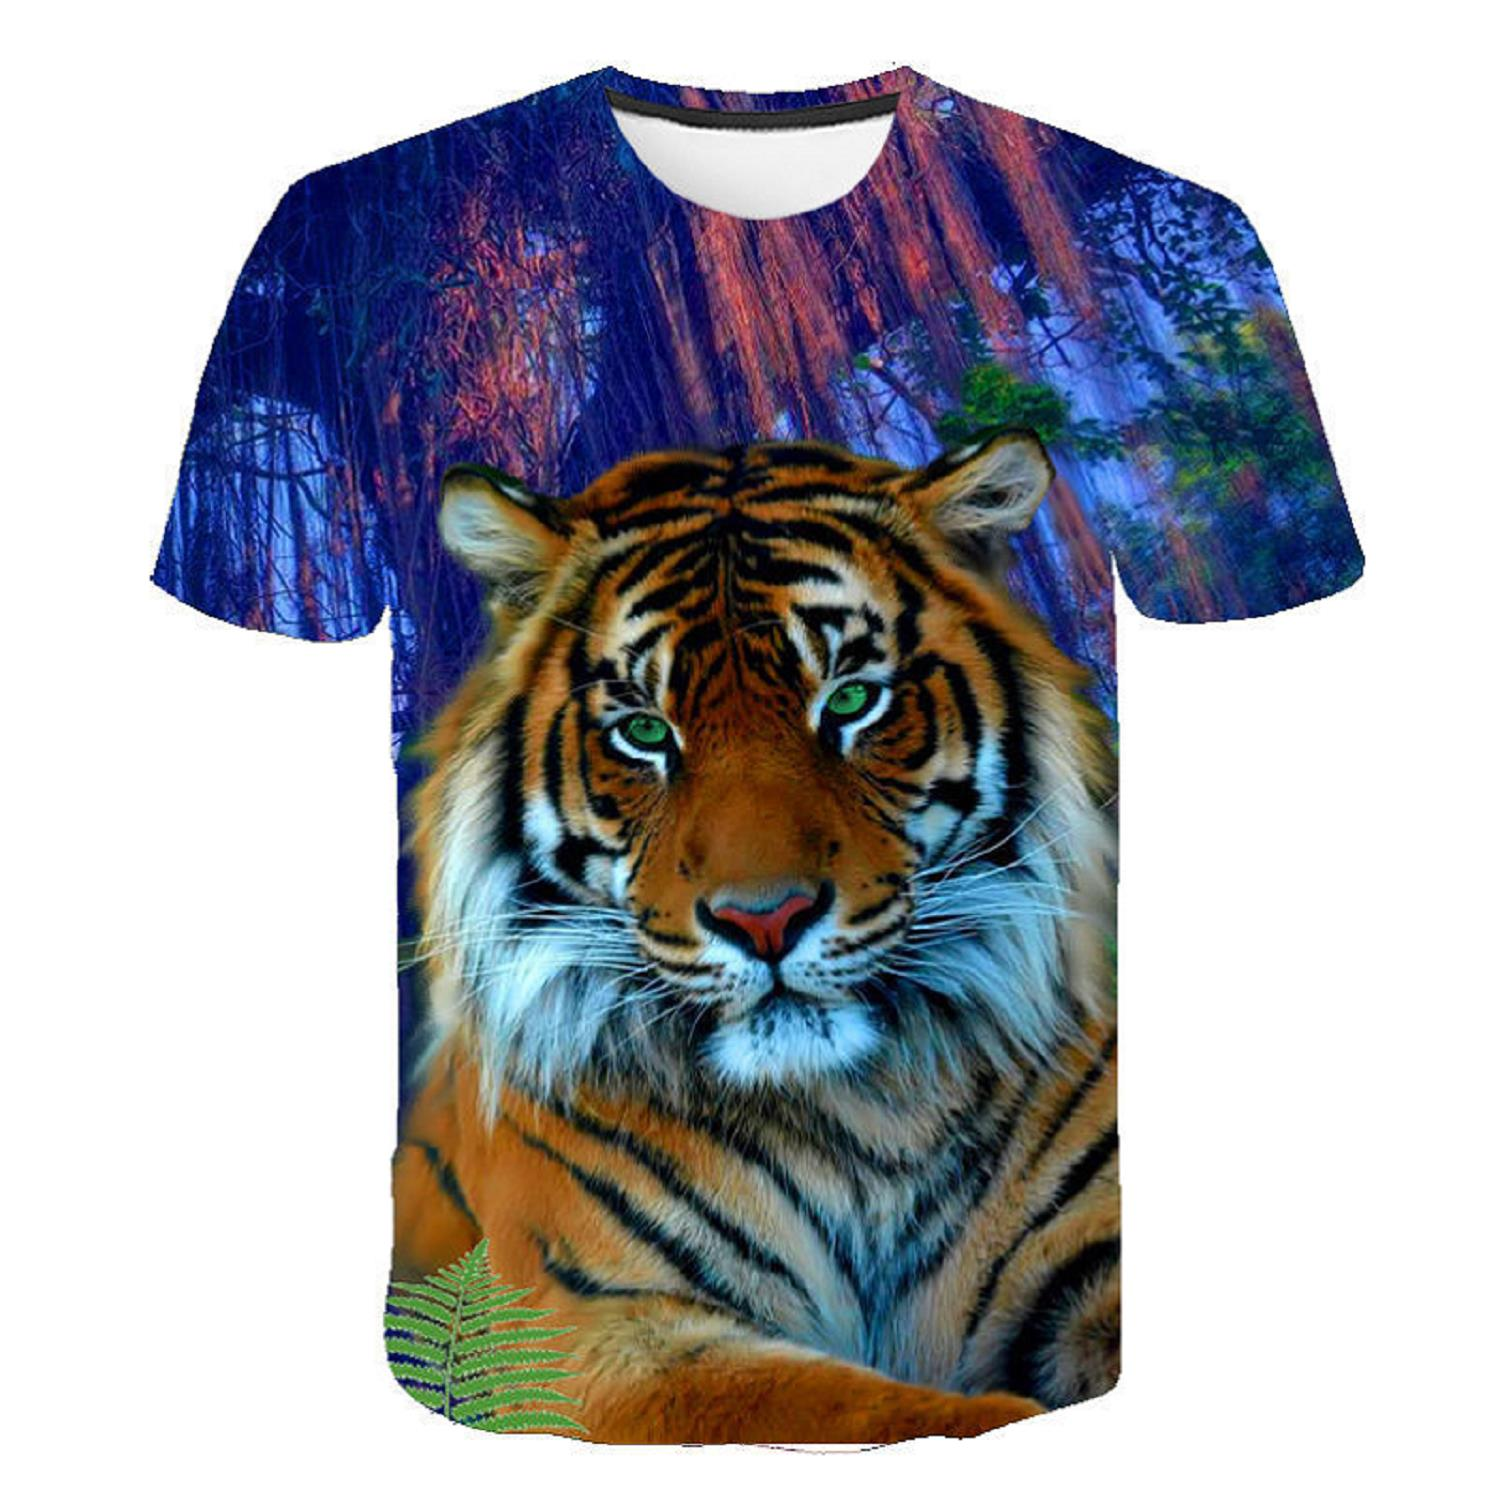 Men T-Shirt Tops Short-Sleeved Forest Tiger 3d-Printed Male Casual O-Neck